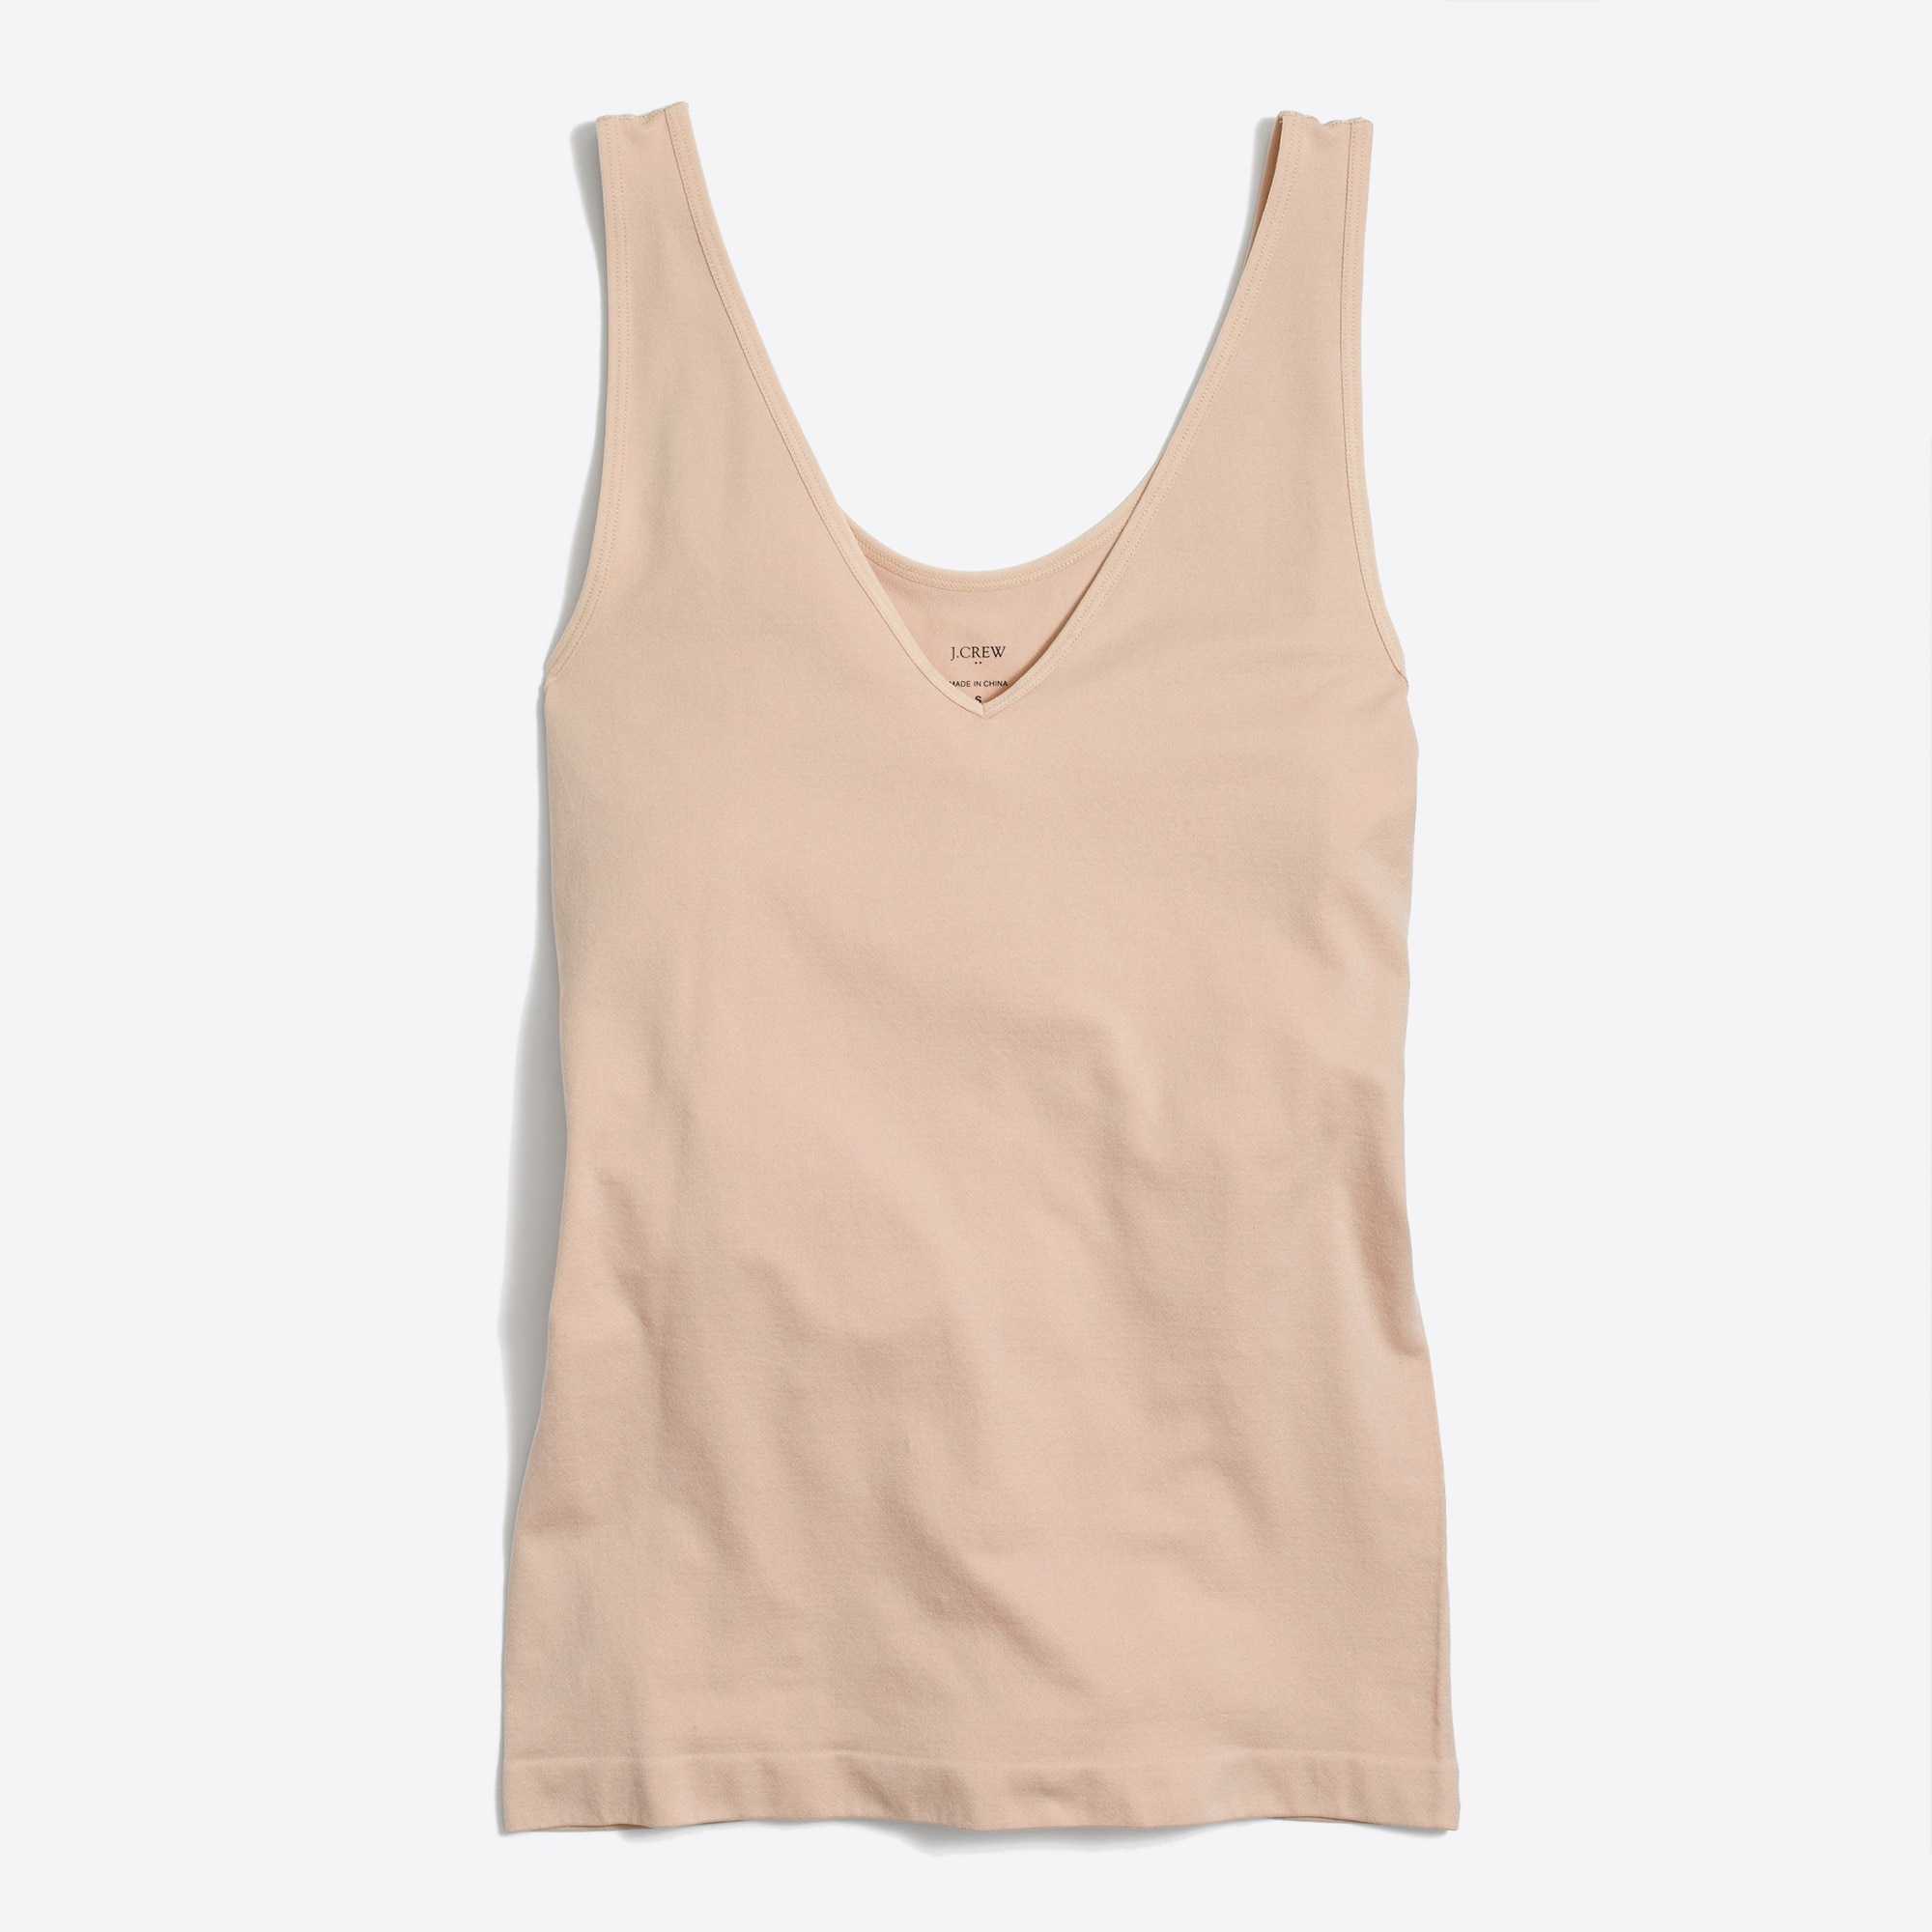 Image 2 for Layering tank top